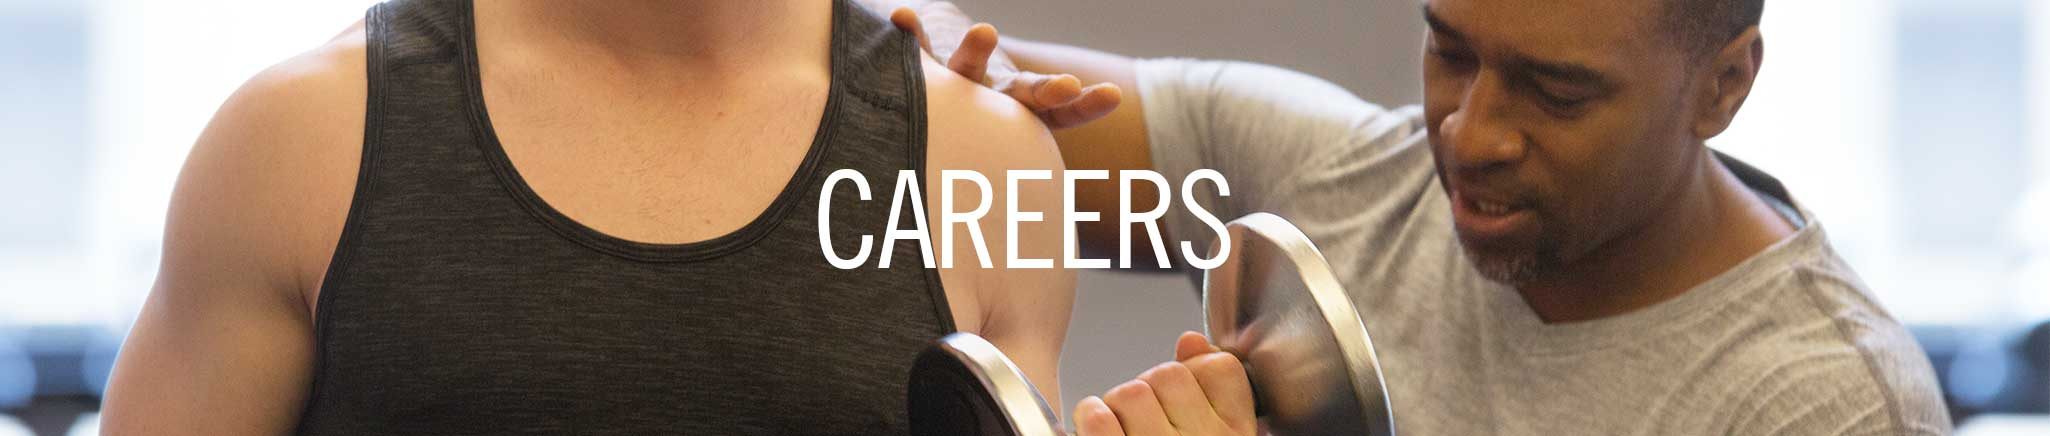 Careers at ZUM Fitness in the heart of downtown Seattle